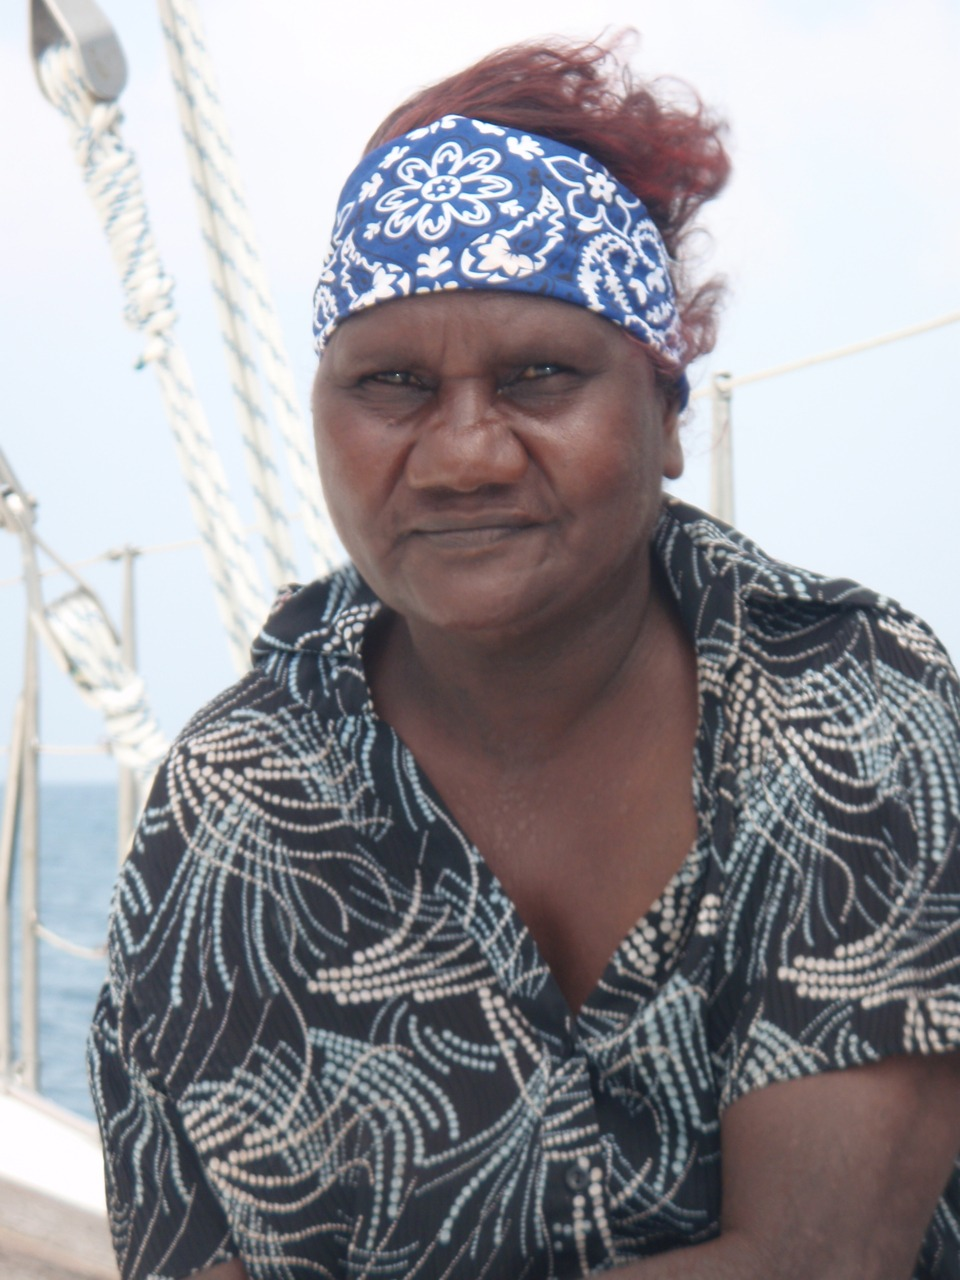 Phylamena Naylor- one of the terrific Guugu Yimithirr Elders taking part in the Hope Vale/ Pelican project (2010) #seacountry #photooftheday